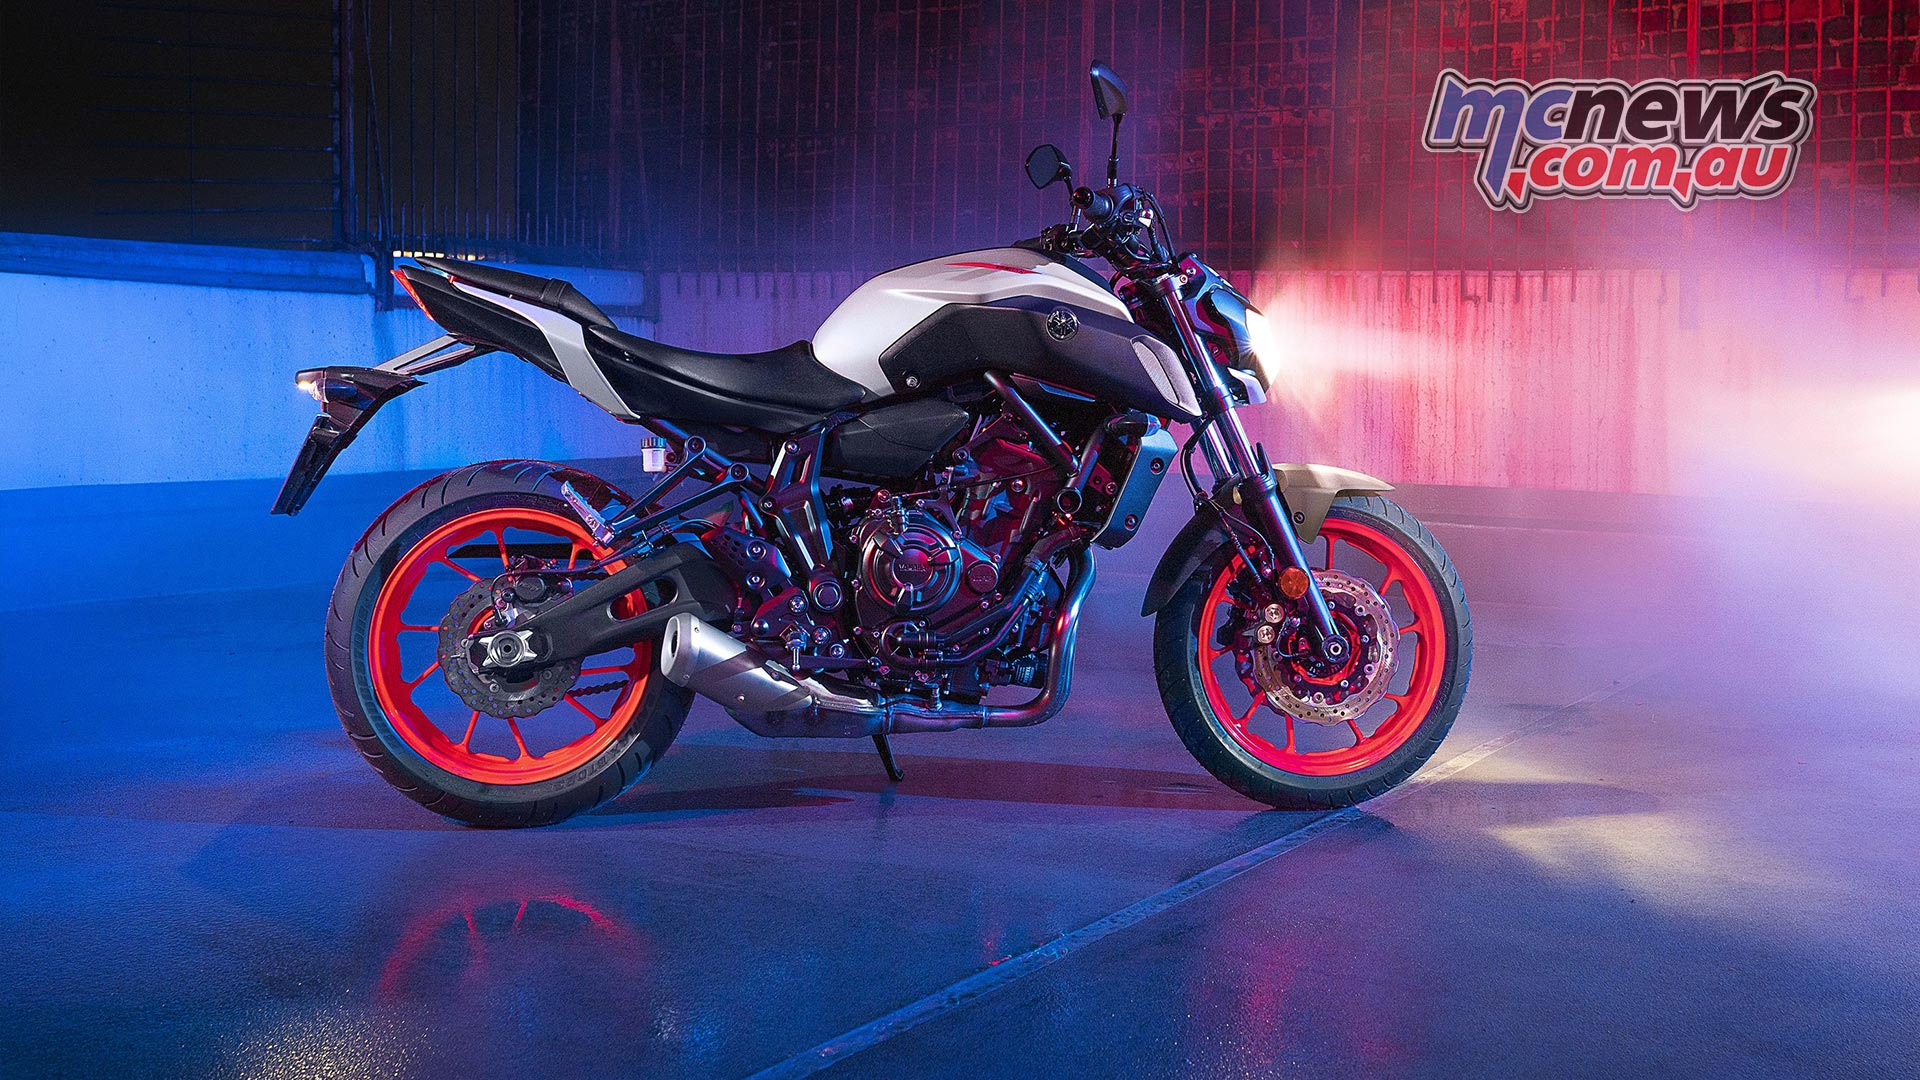 Road Motorcycle Sales Figures 2019 Half Year Results Motorcycle News Sport And Reviews